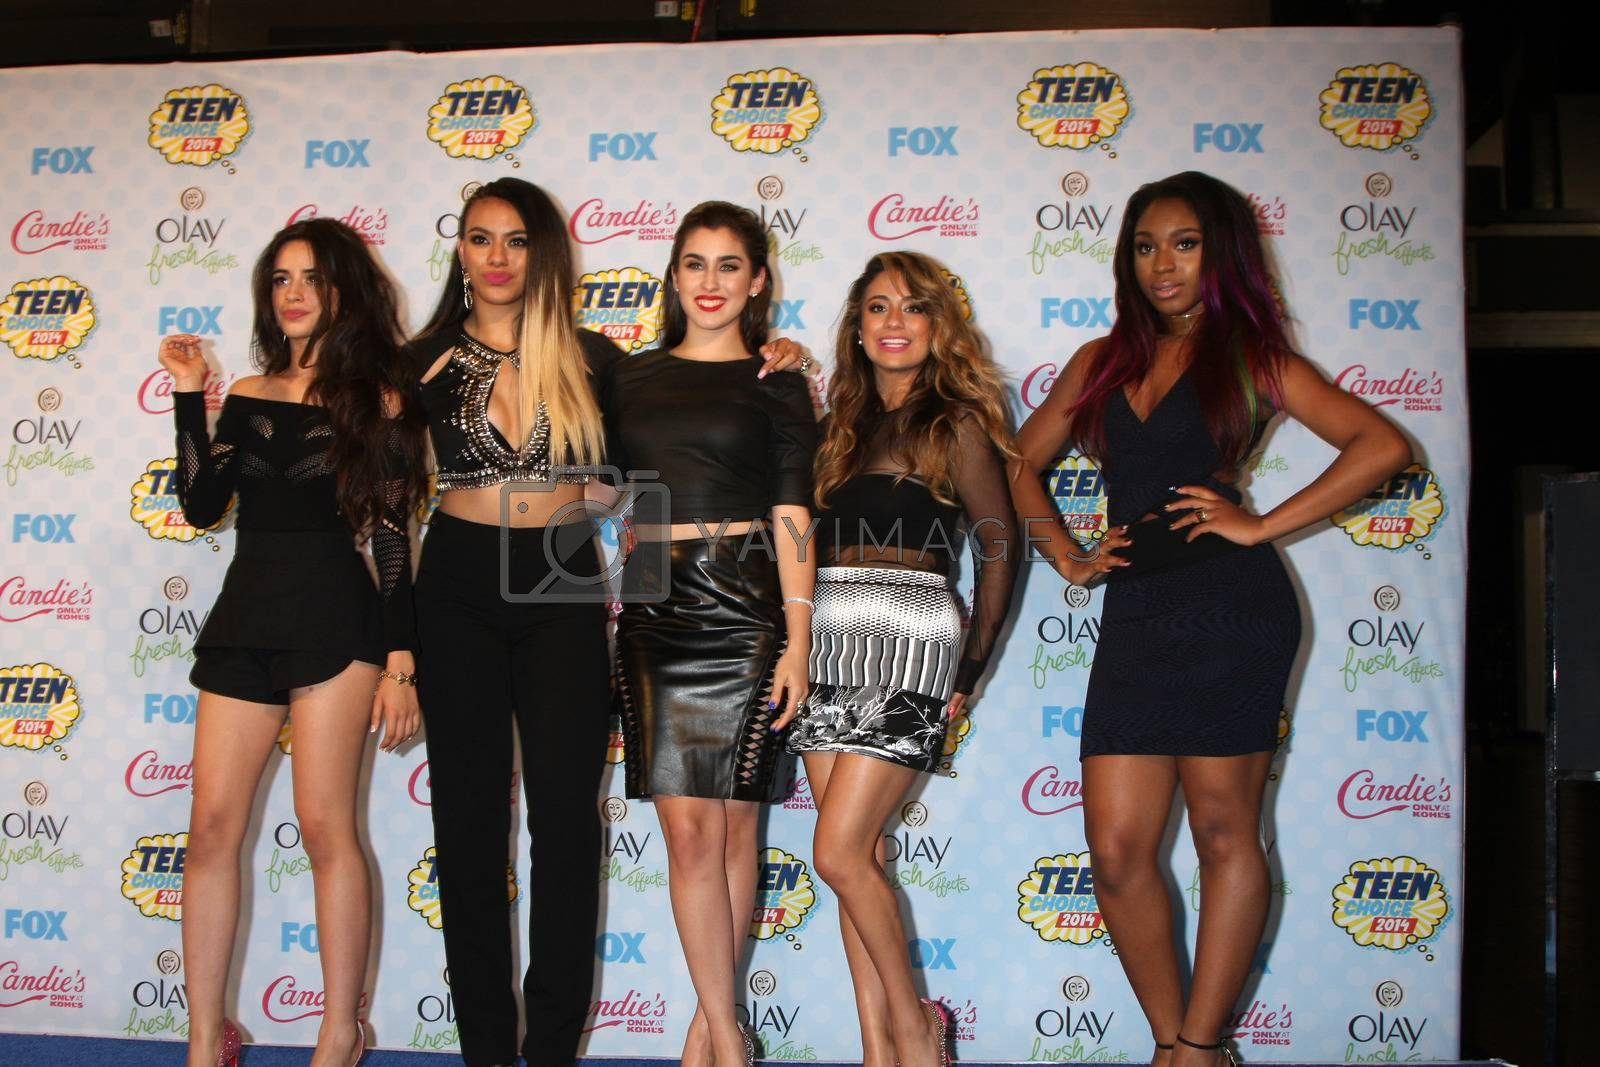 Royalty free image of Fifth Harmony at the 2014 Teen Choice Awards Press Room, Shrine Auditorium, Los Angeles, CA 08-10-14/ImageCollect by ImageCollect